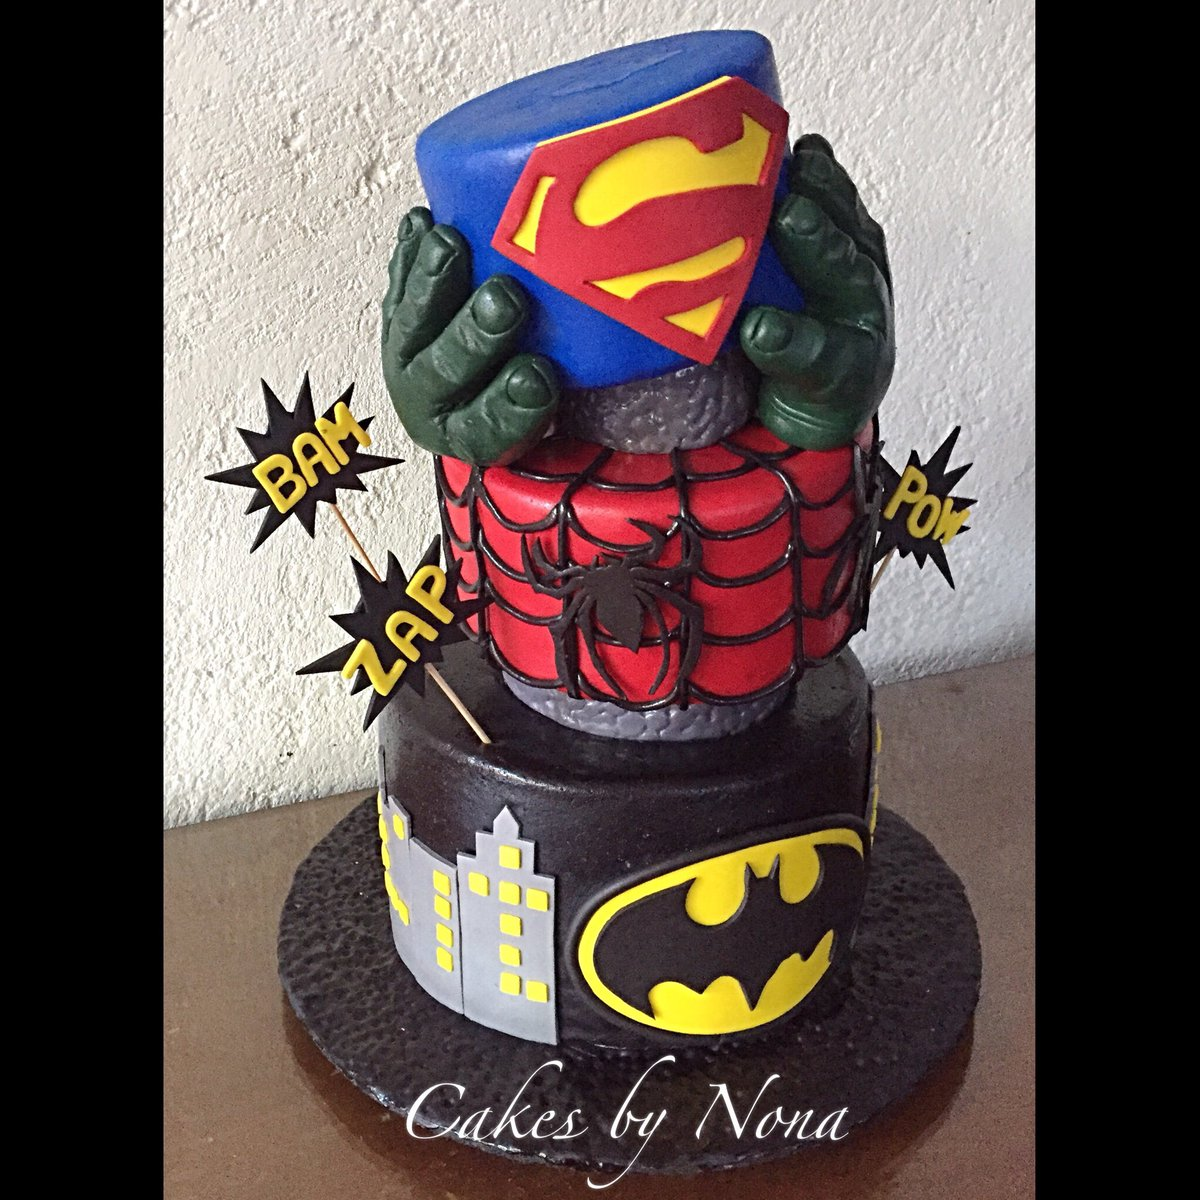 Cakesbynona On Twitter Super Heroes Themed Bday Cake Superheroes